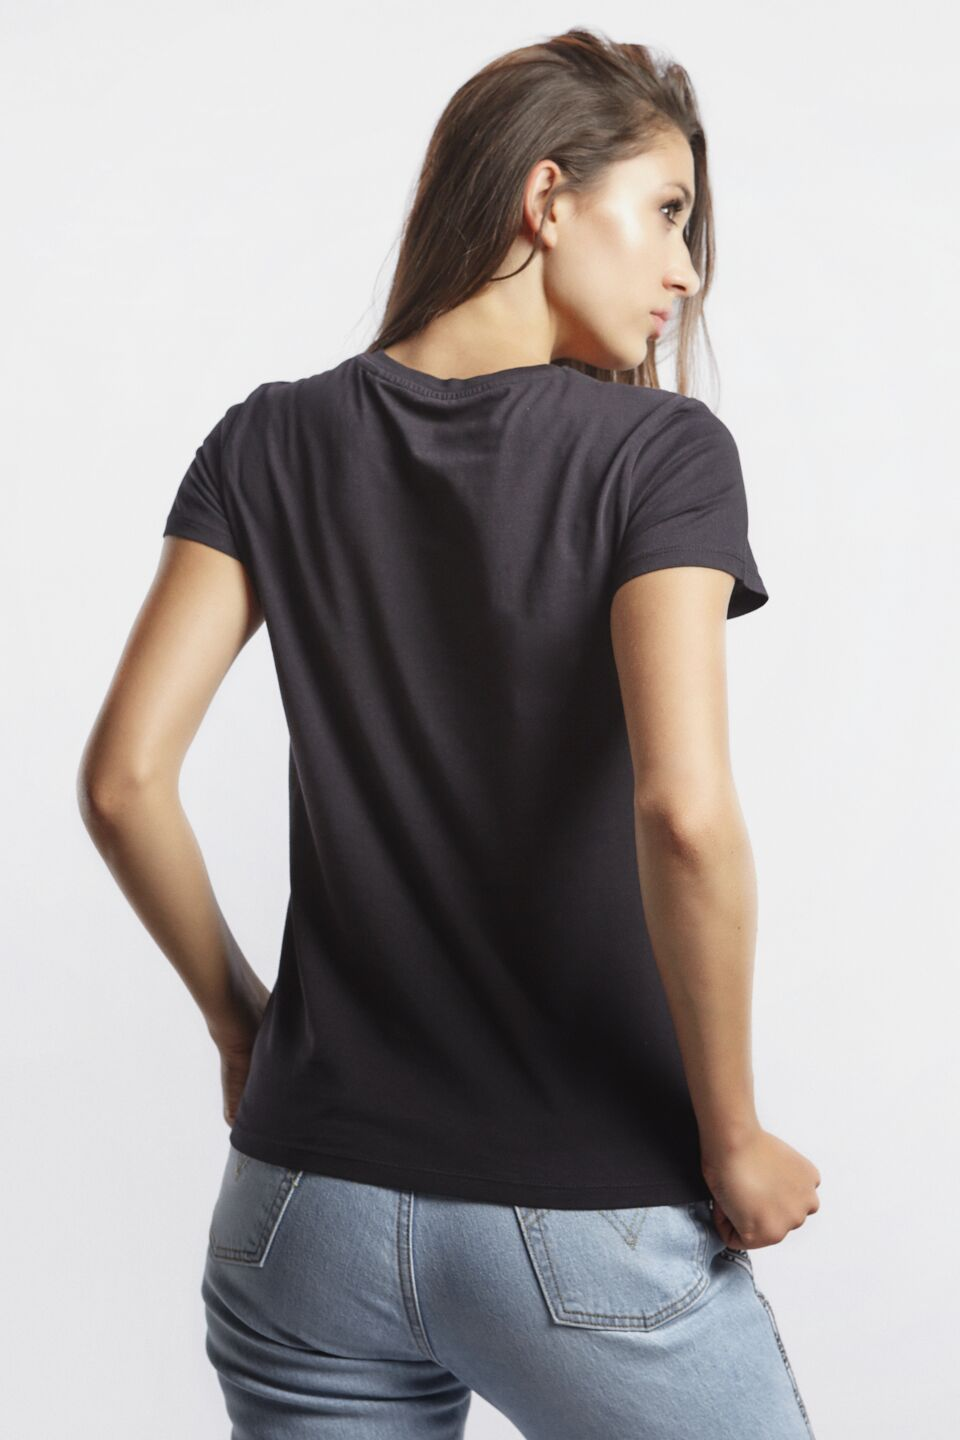 THE PERFECT GRAPHIC TEE 0201 LARGE BATWING BLACK